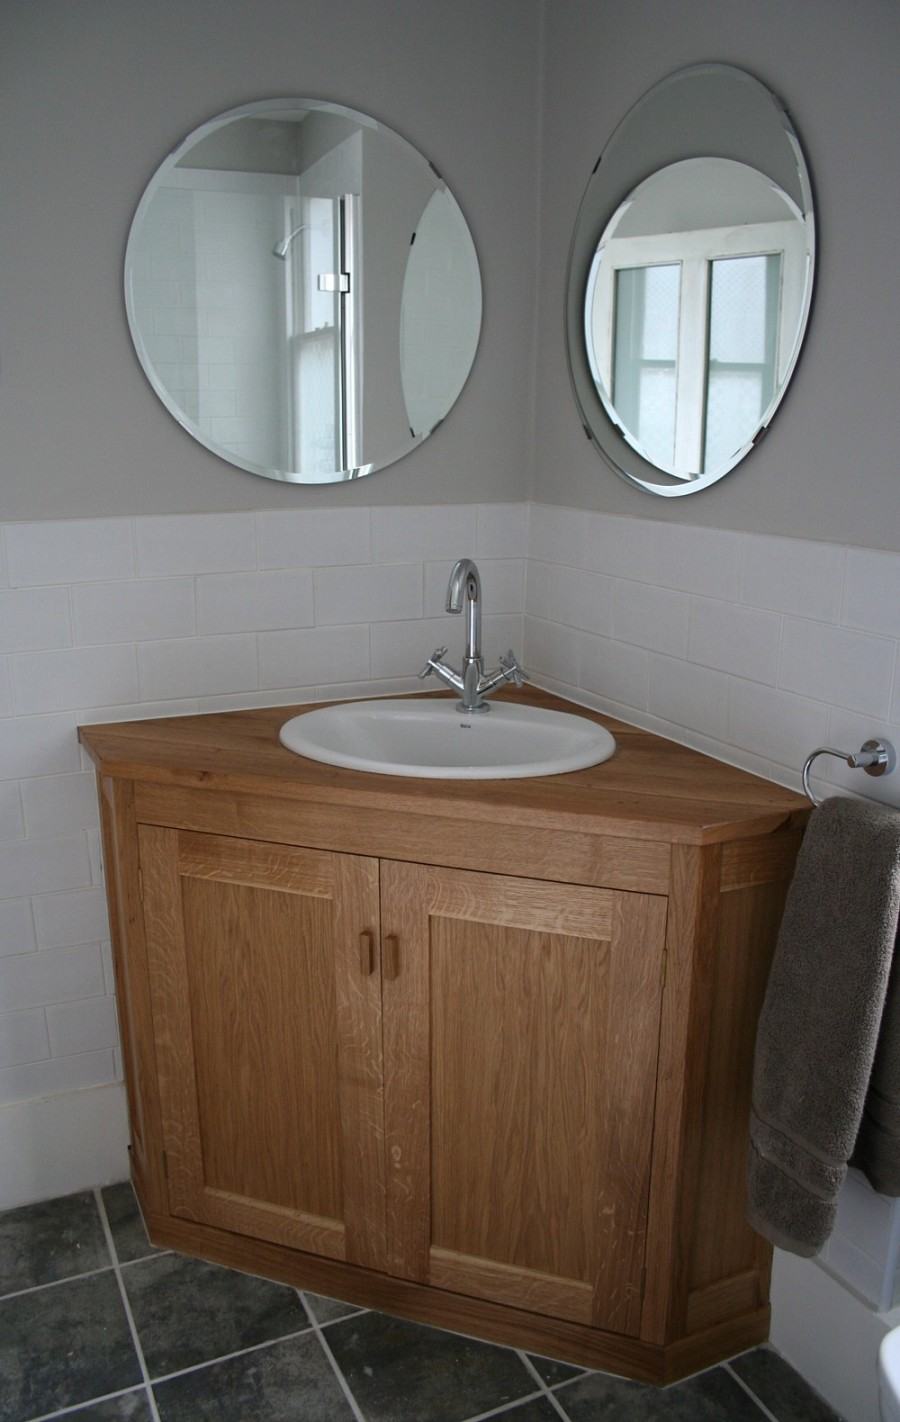 fascinating-round-wall-mirrors-above-wooden-corner-bathroom-vanity